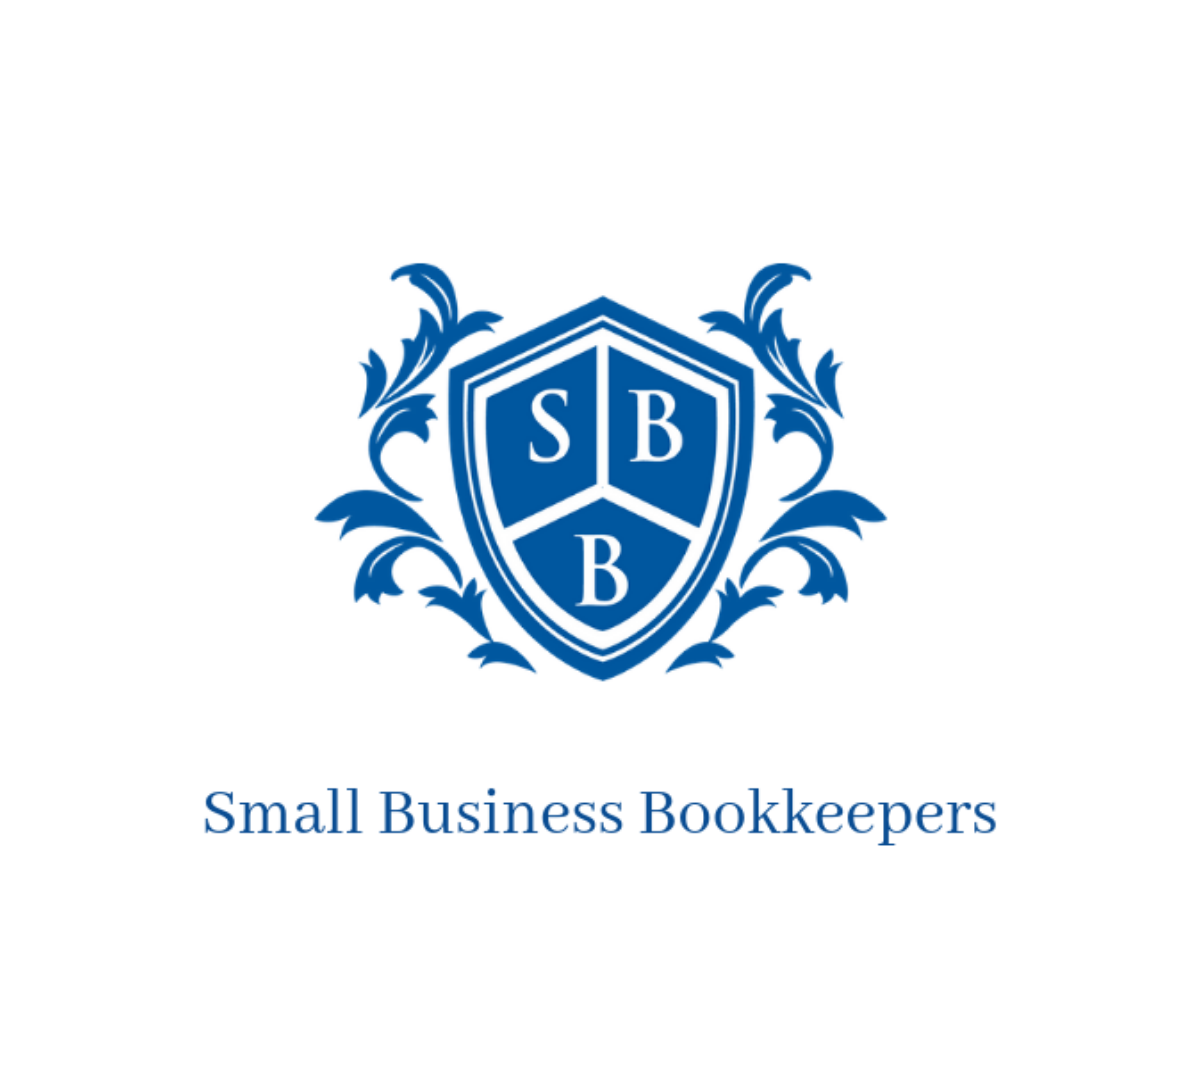 25,600 increase in unpaid post views by Small Business Bookkeepers